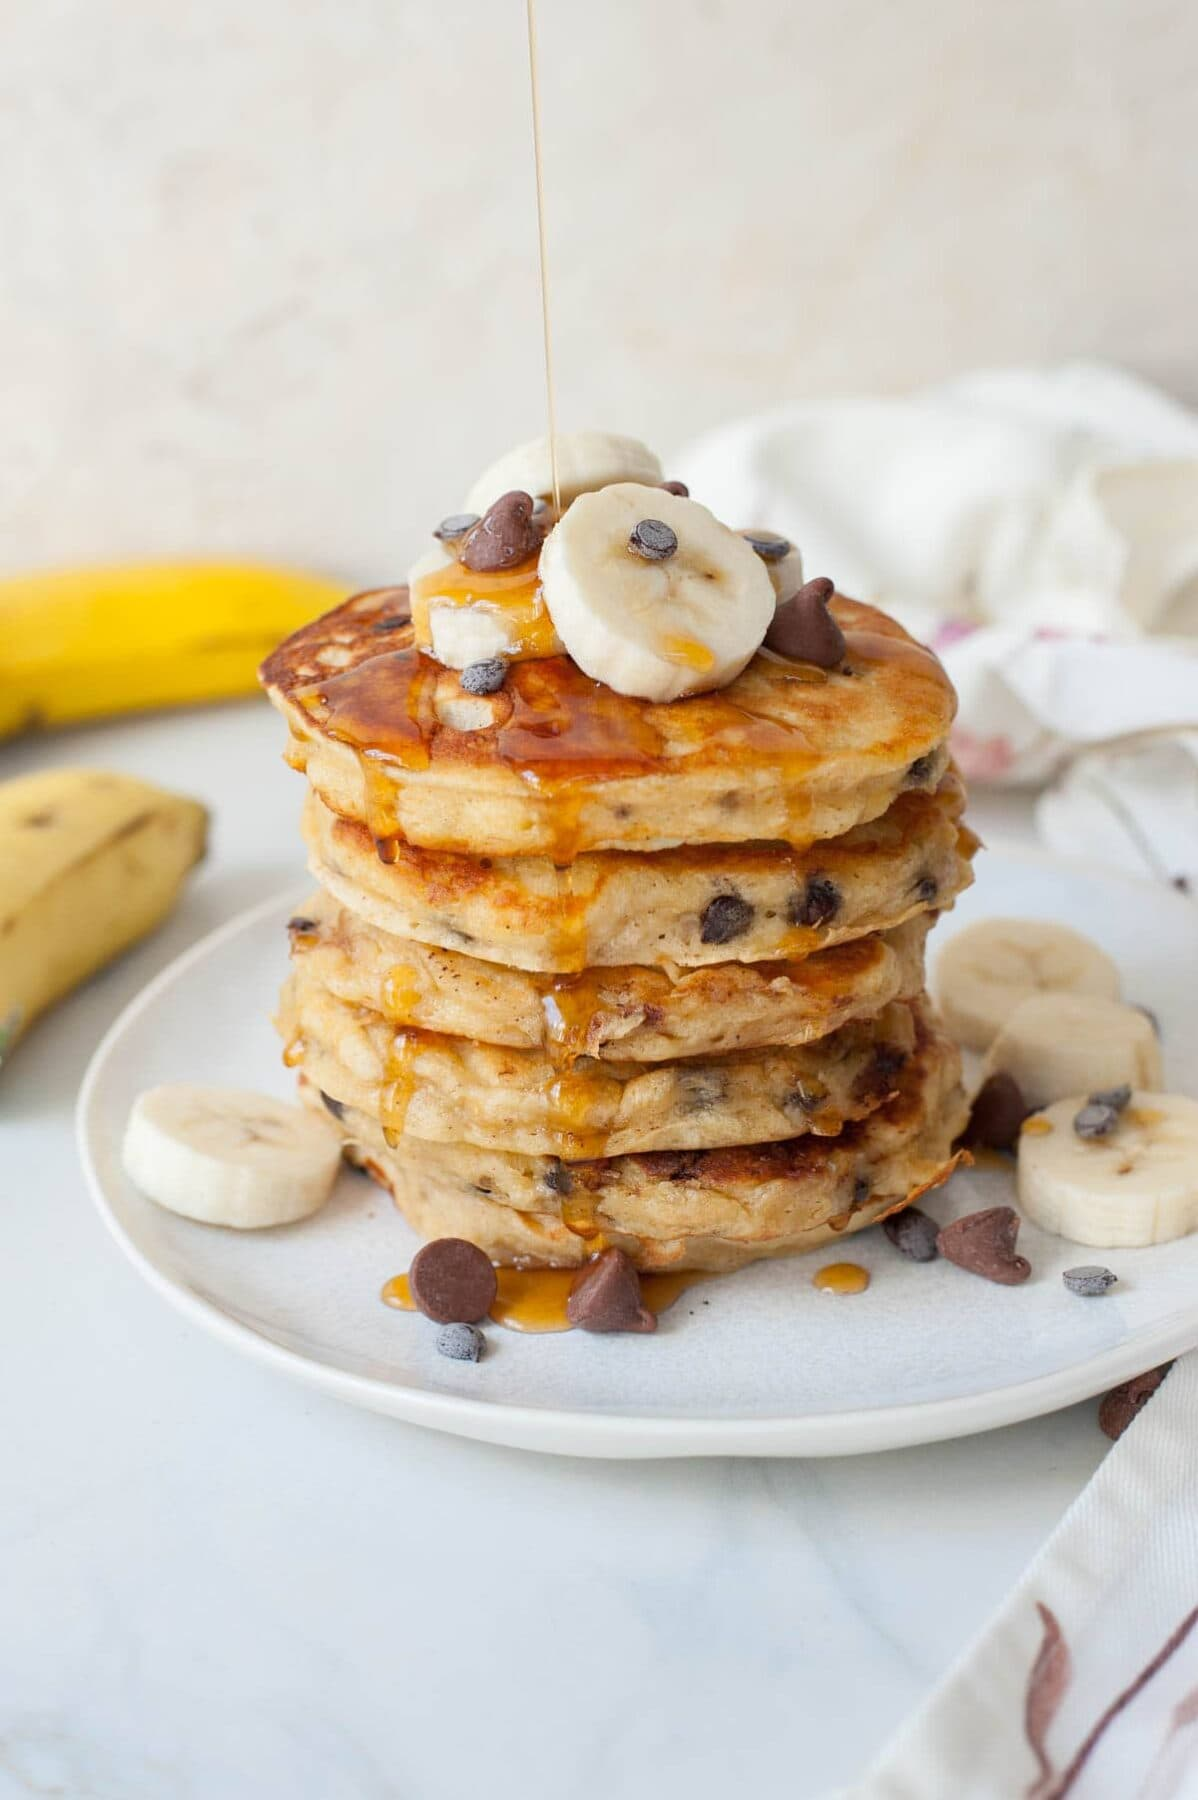 maple syrup is being poured over a stack of banana chocolate chip pancakes